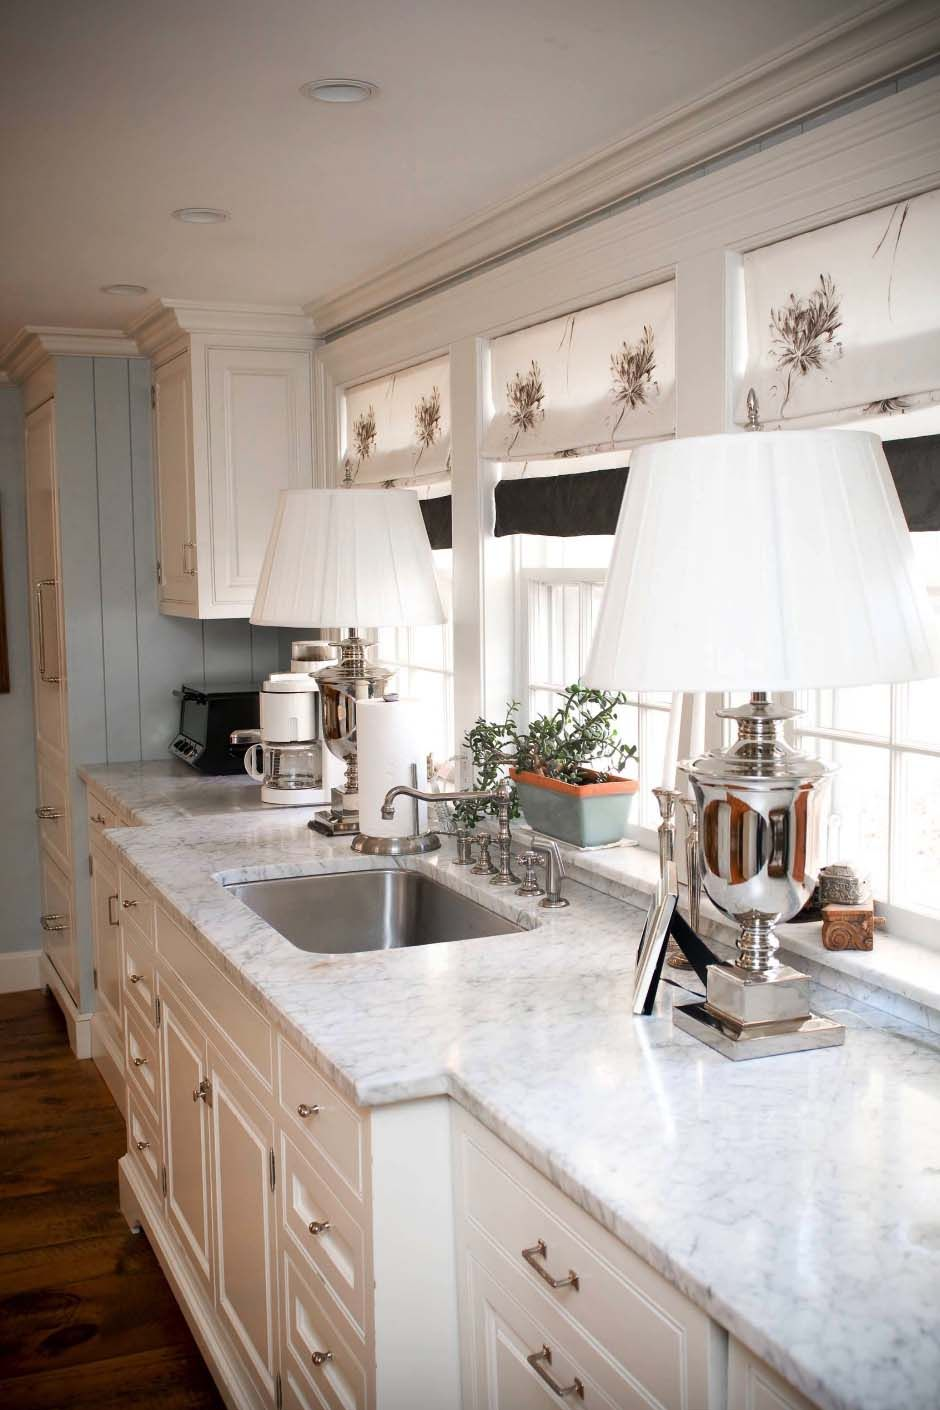 Low window behind kitchen sink   beautiful and inspiring lightfilled kitchens with white